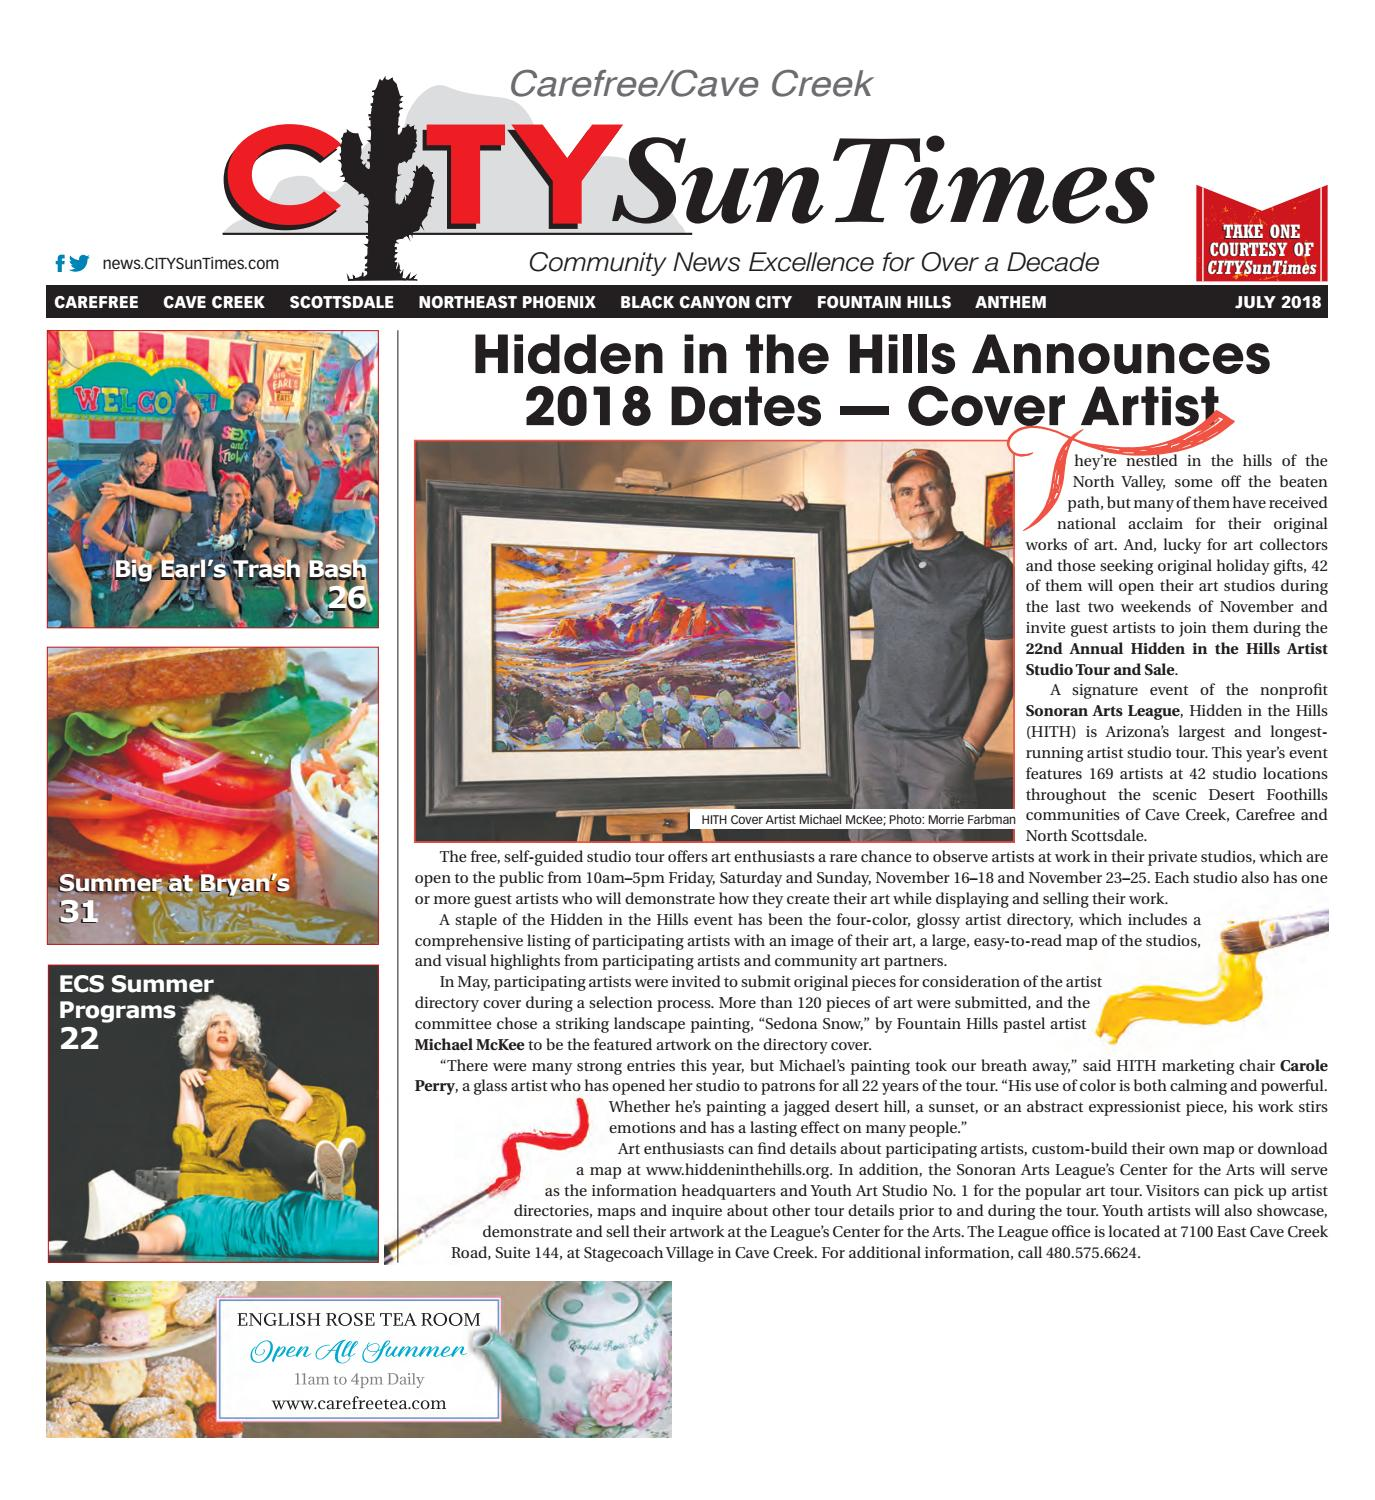 Carefree Cave Creek July 2018 Issue Of Citysuntimes By Jenifer Lee Torch Tas Ransel Glandale Abu Issuu